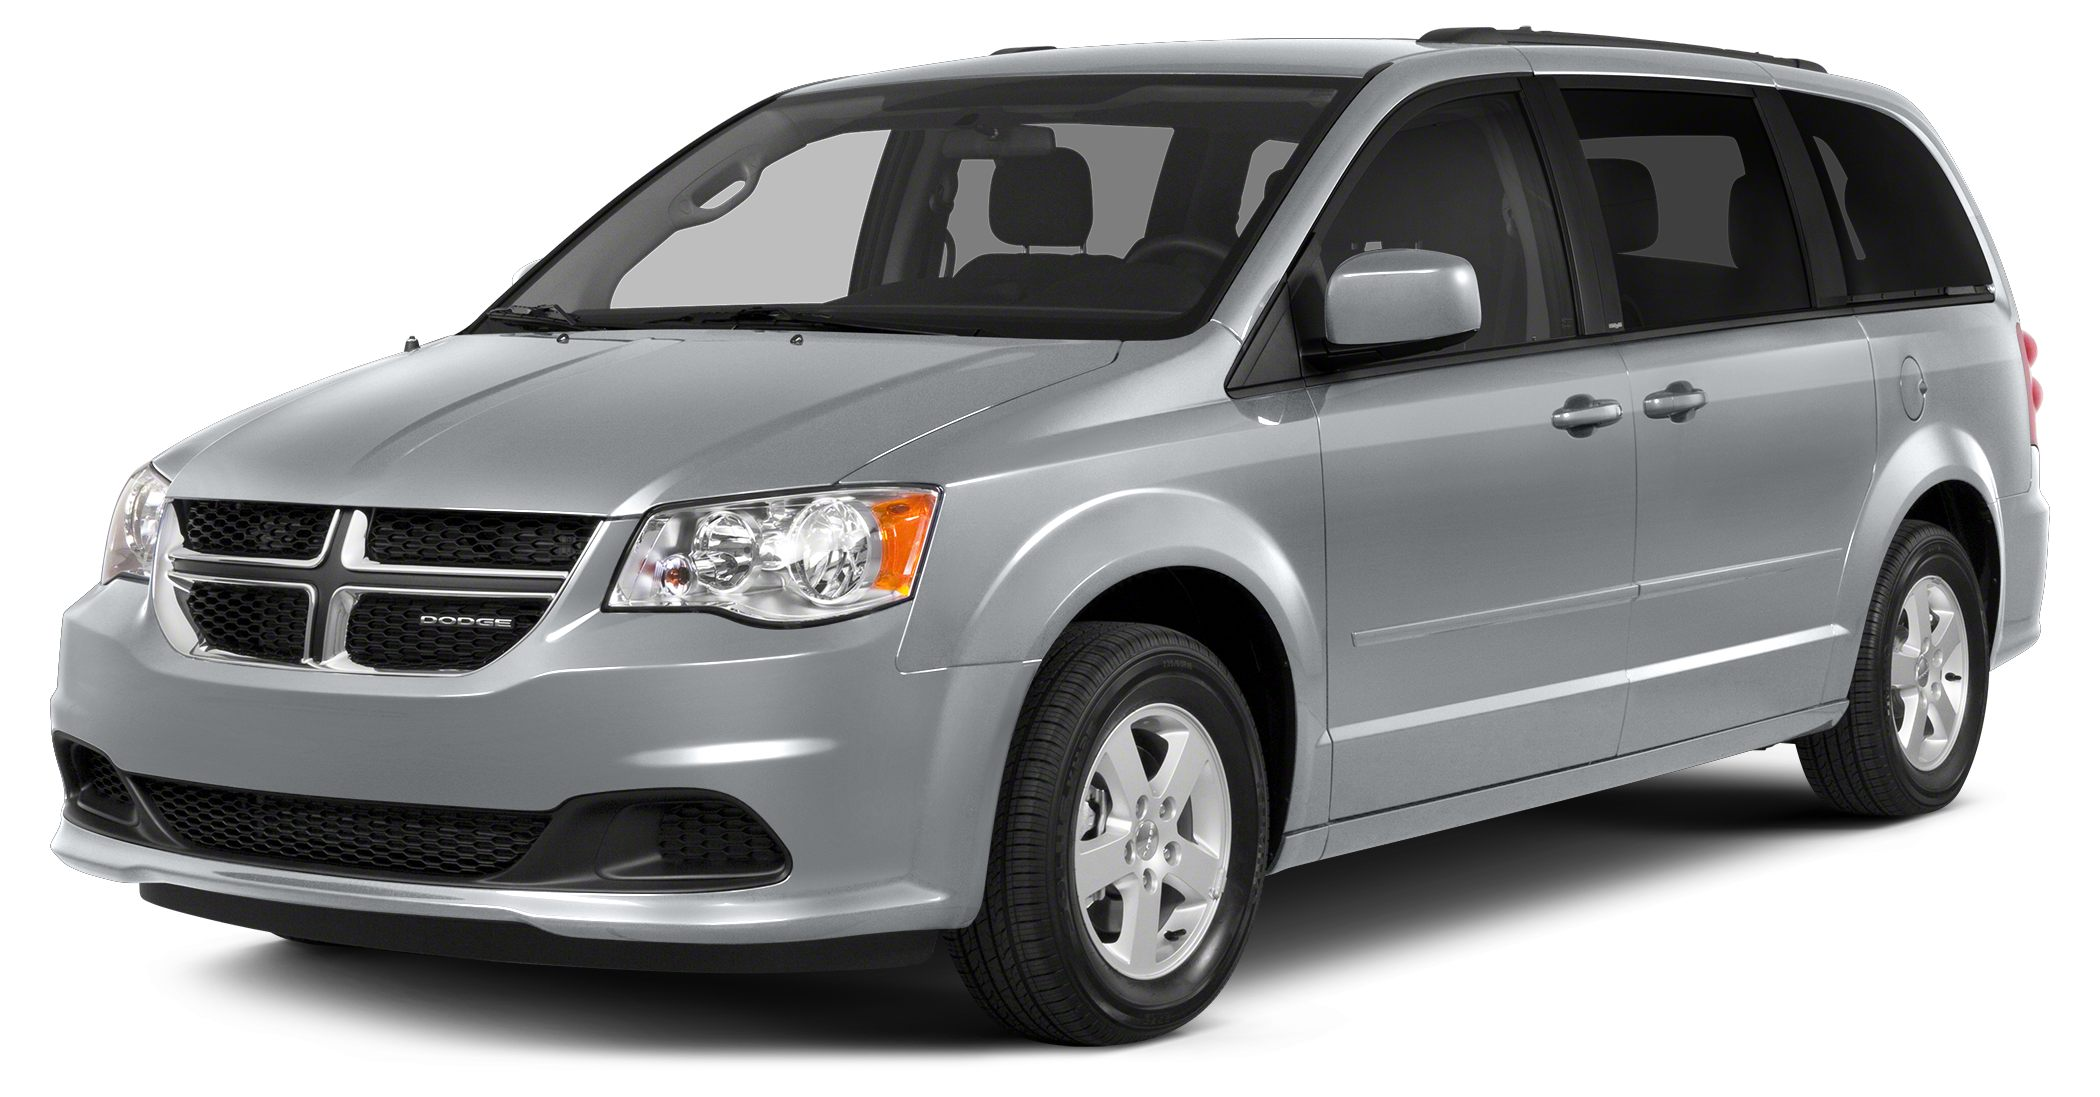 2014 Dodge Grand Caravan SXT Miles 40140Color Silver Stock P1265 VIN 2C4RDGCG1ER210522